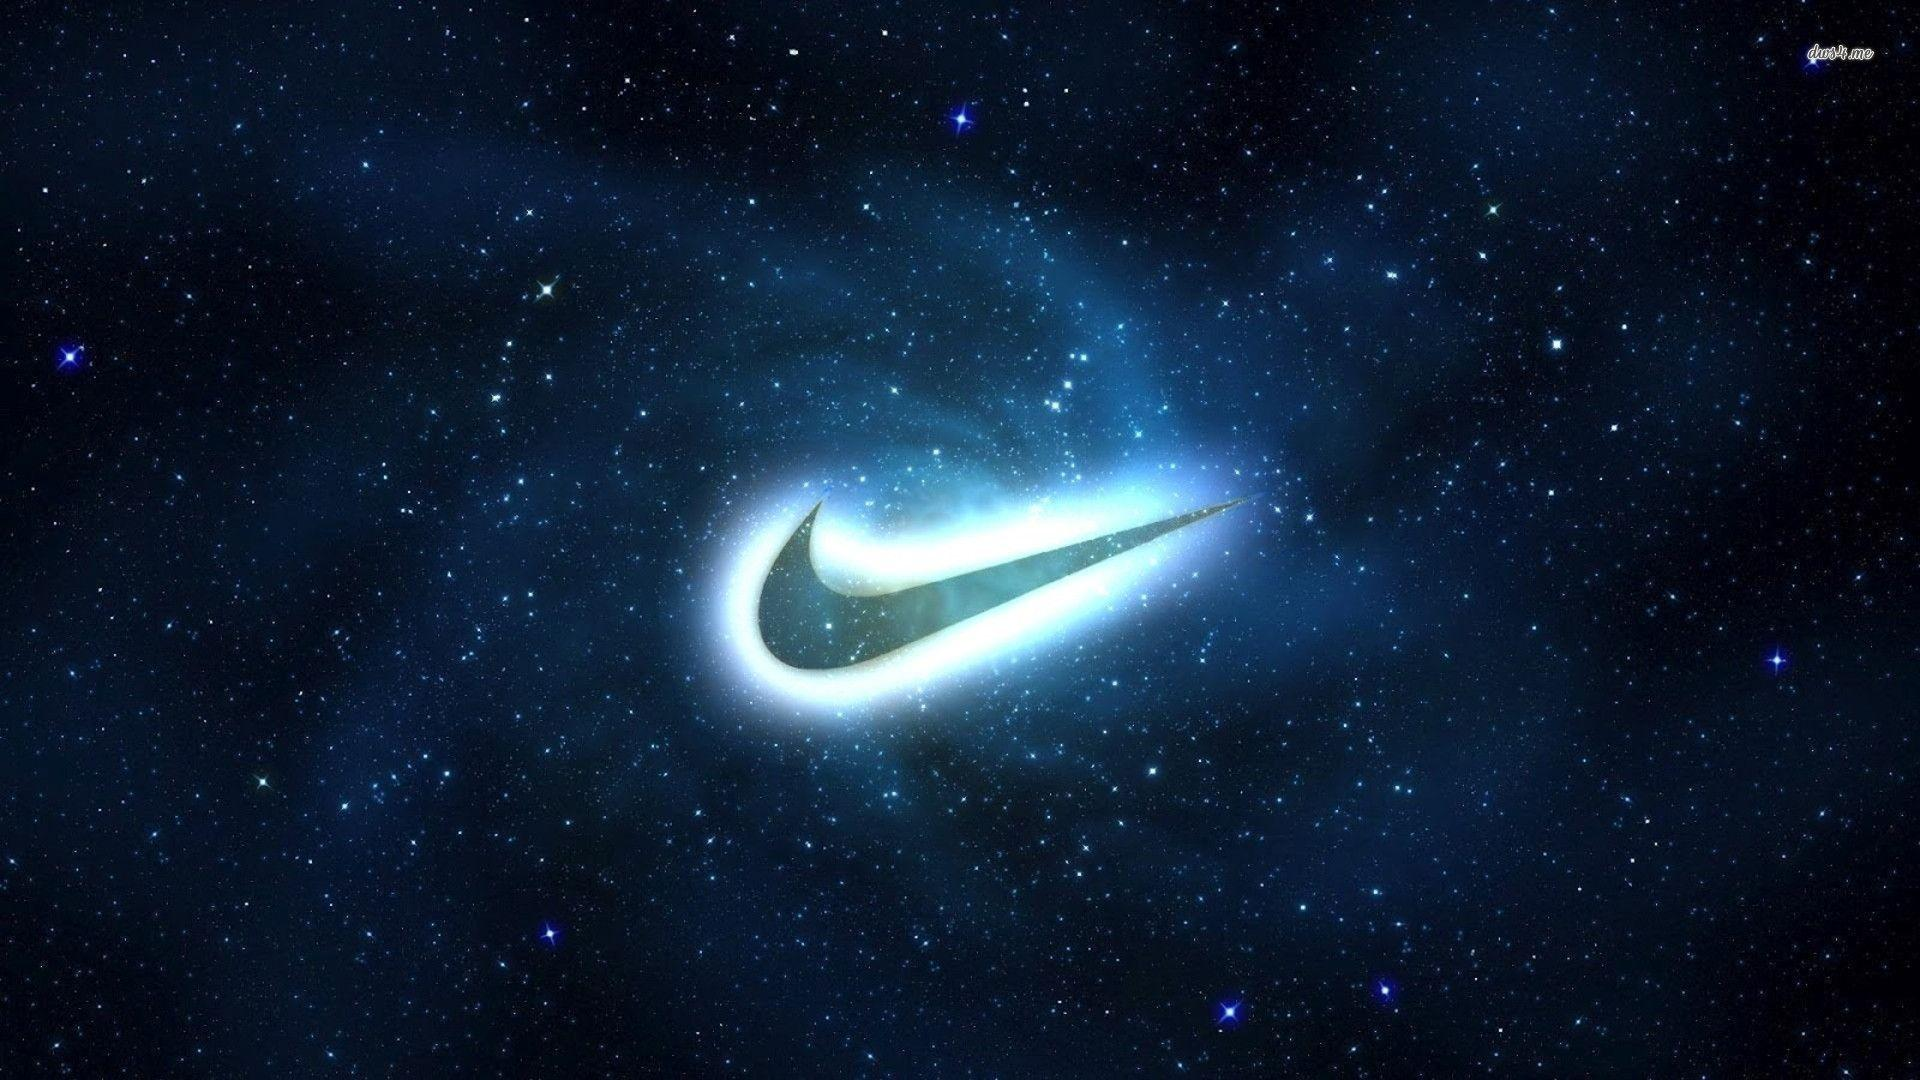 Nike logo wallpapers hd 2015 wallpaper cave - Nike wallpaper hd ...